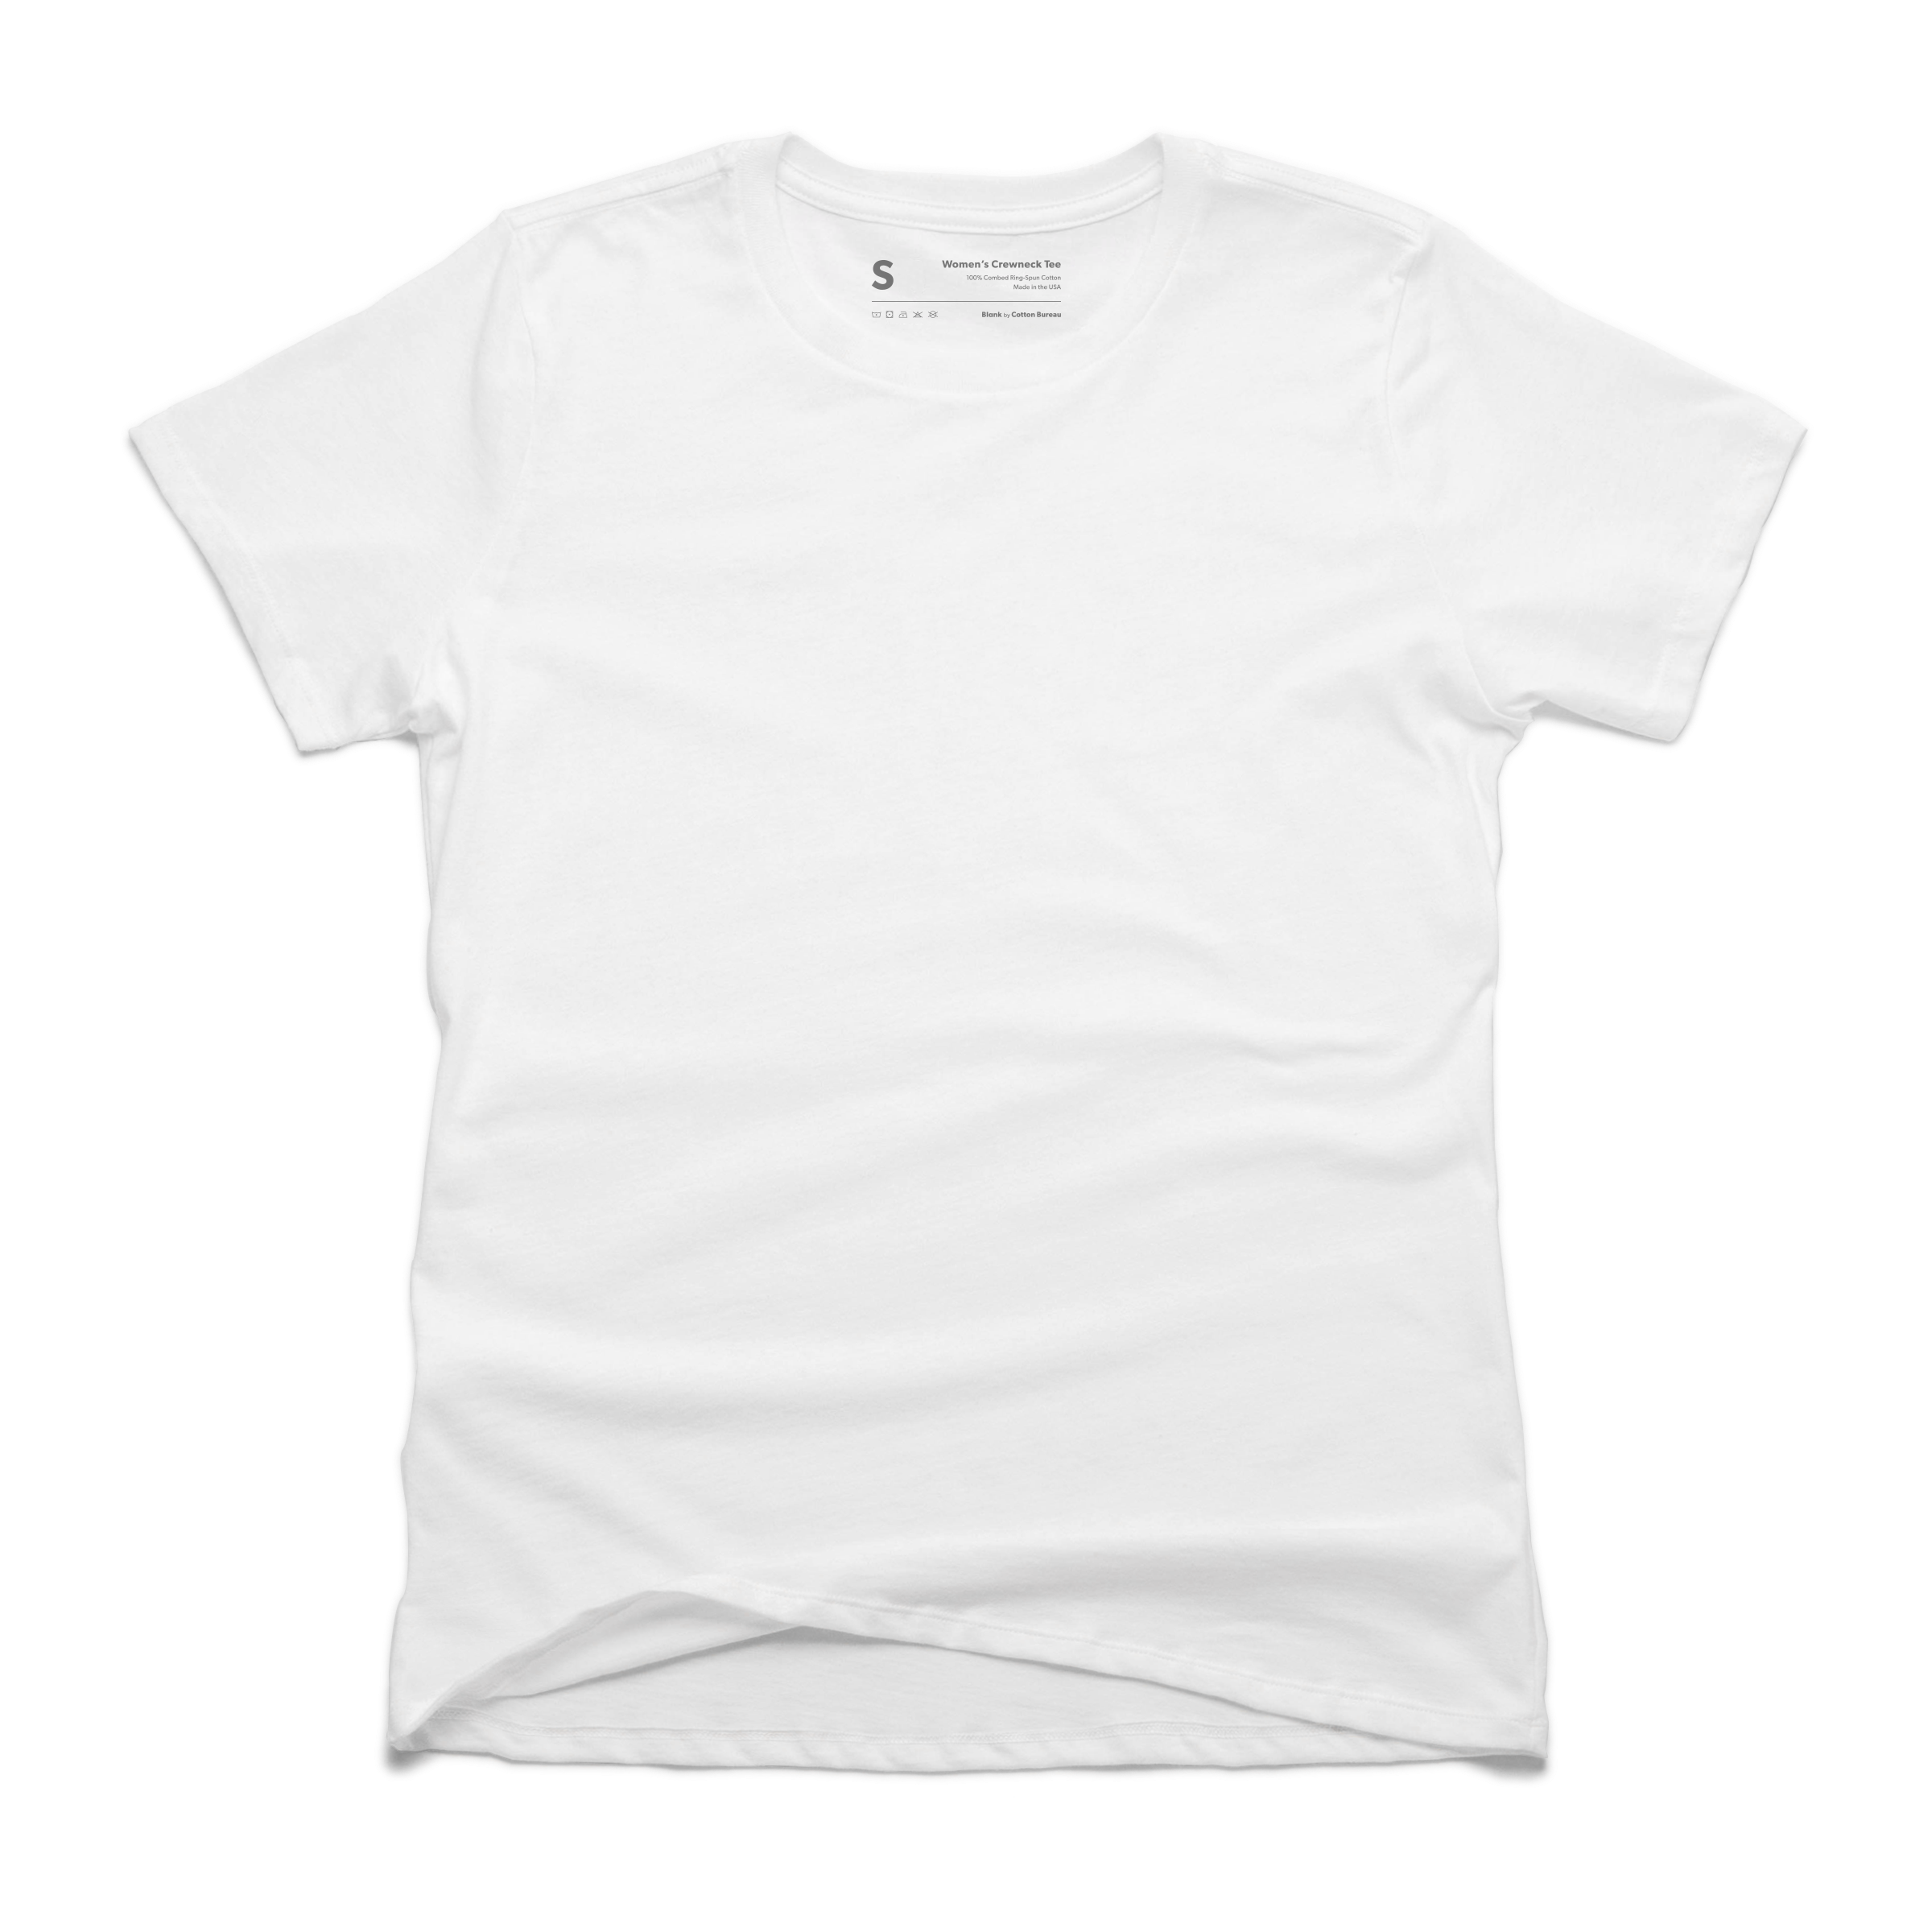 Women's 100% Cotton Premium Tee